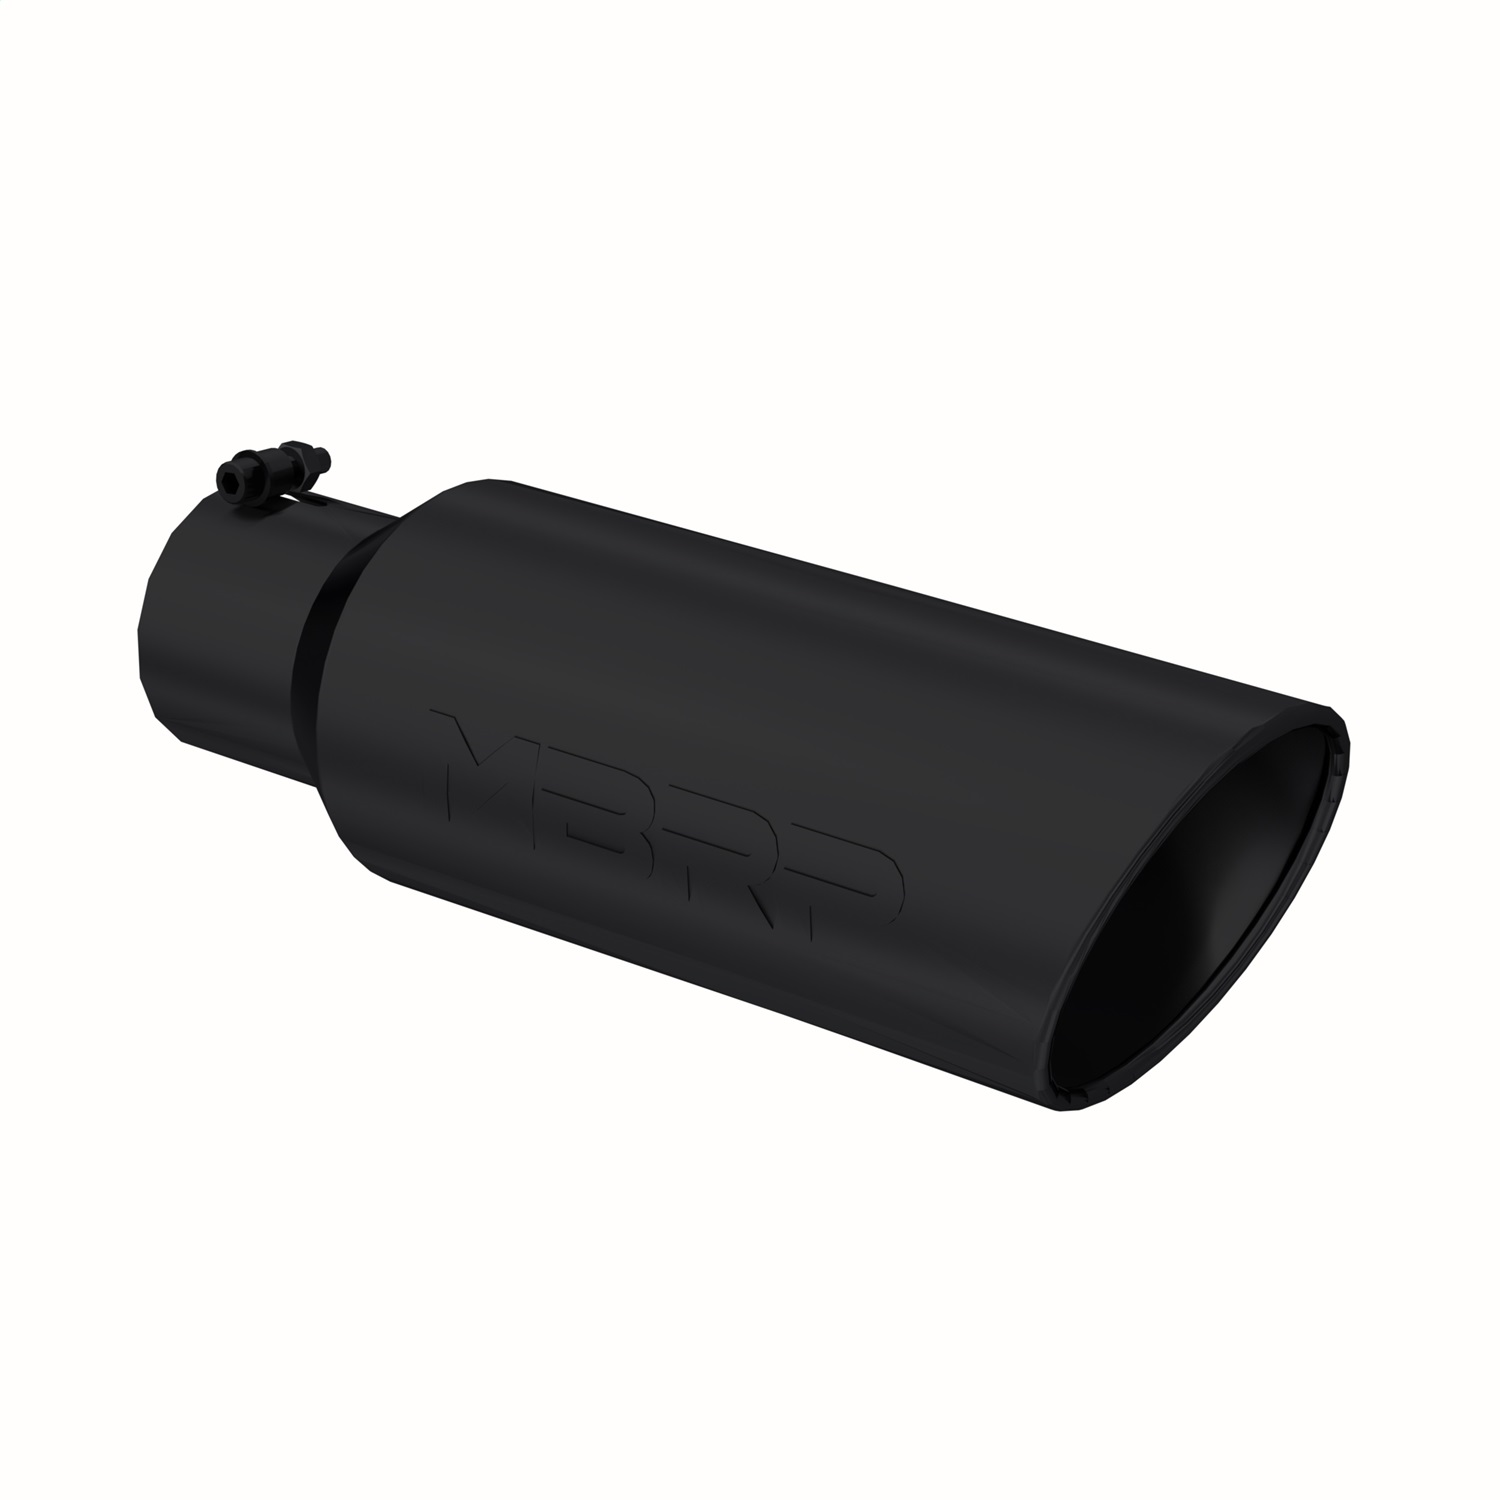 MBRP Exhaust Exhaust Tail Pipe Tip (T5130BLK)